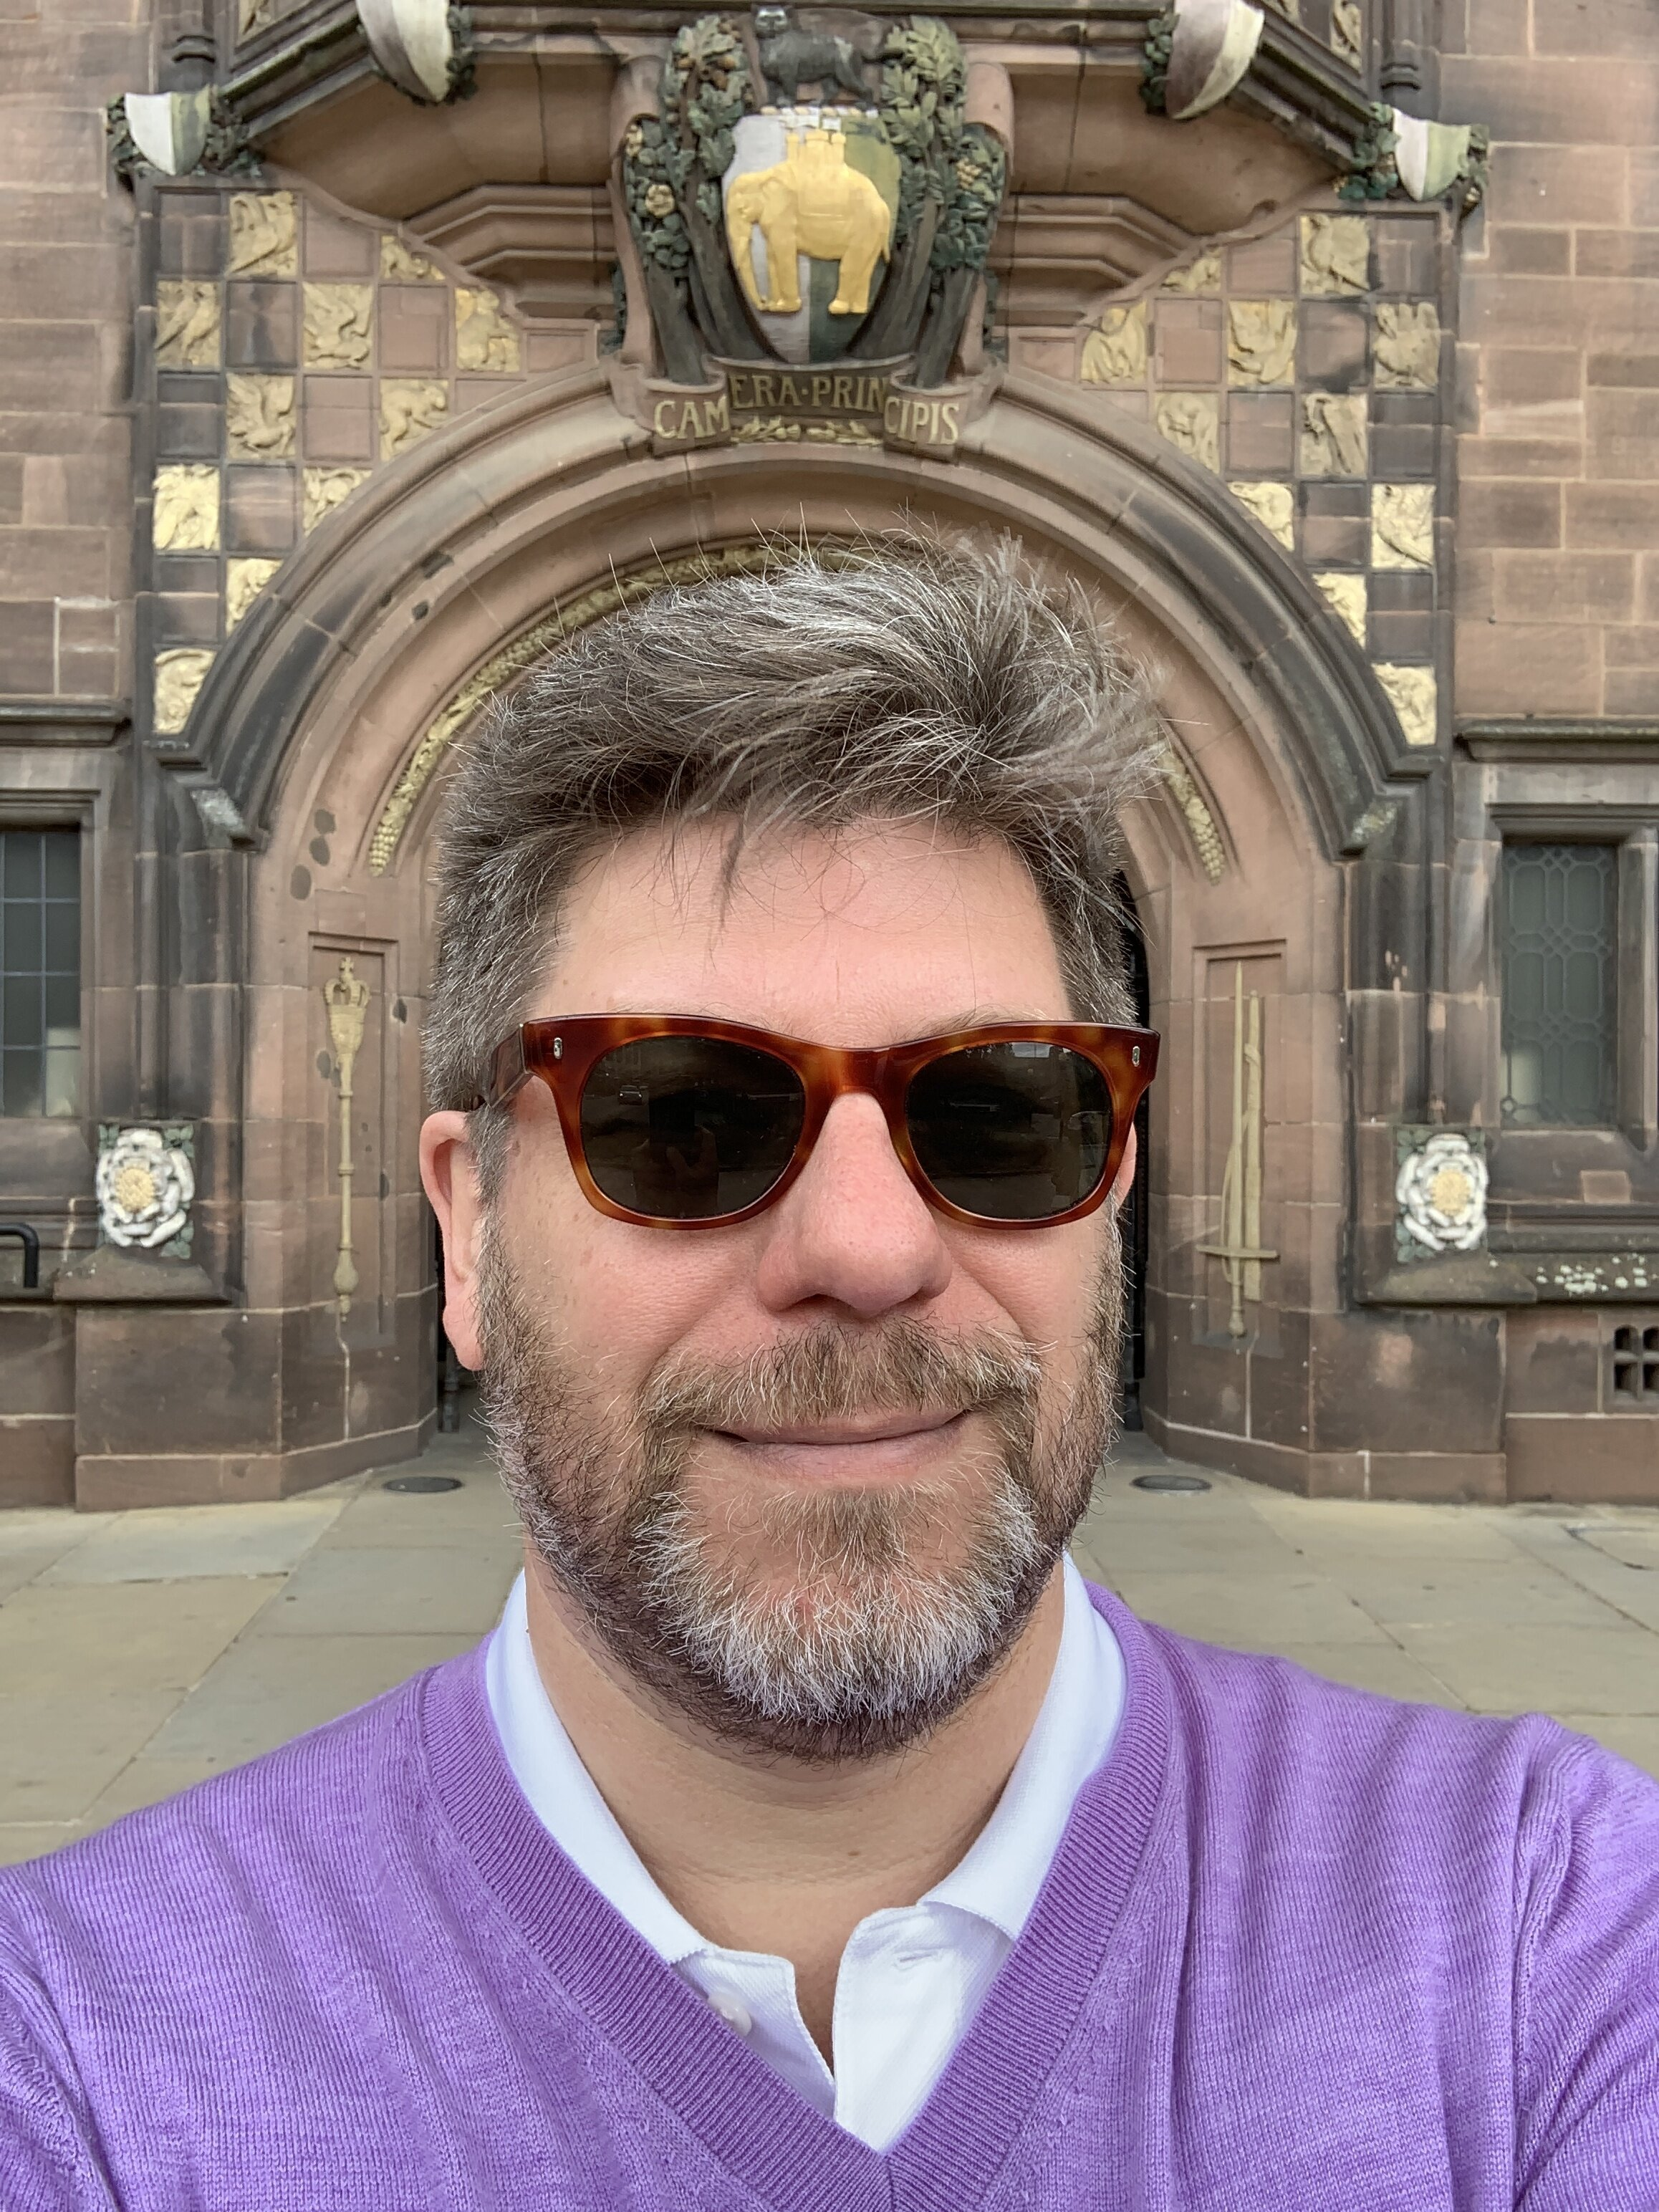 Coventry Town Hall selfie. Observe how carefully I've centered myself. :-)